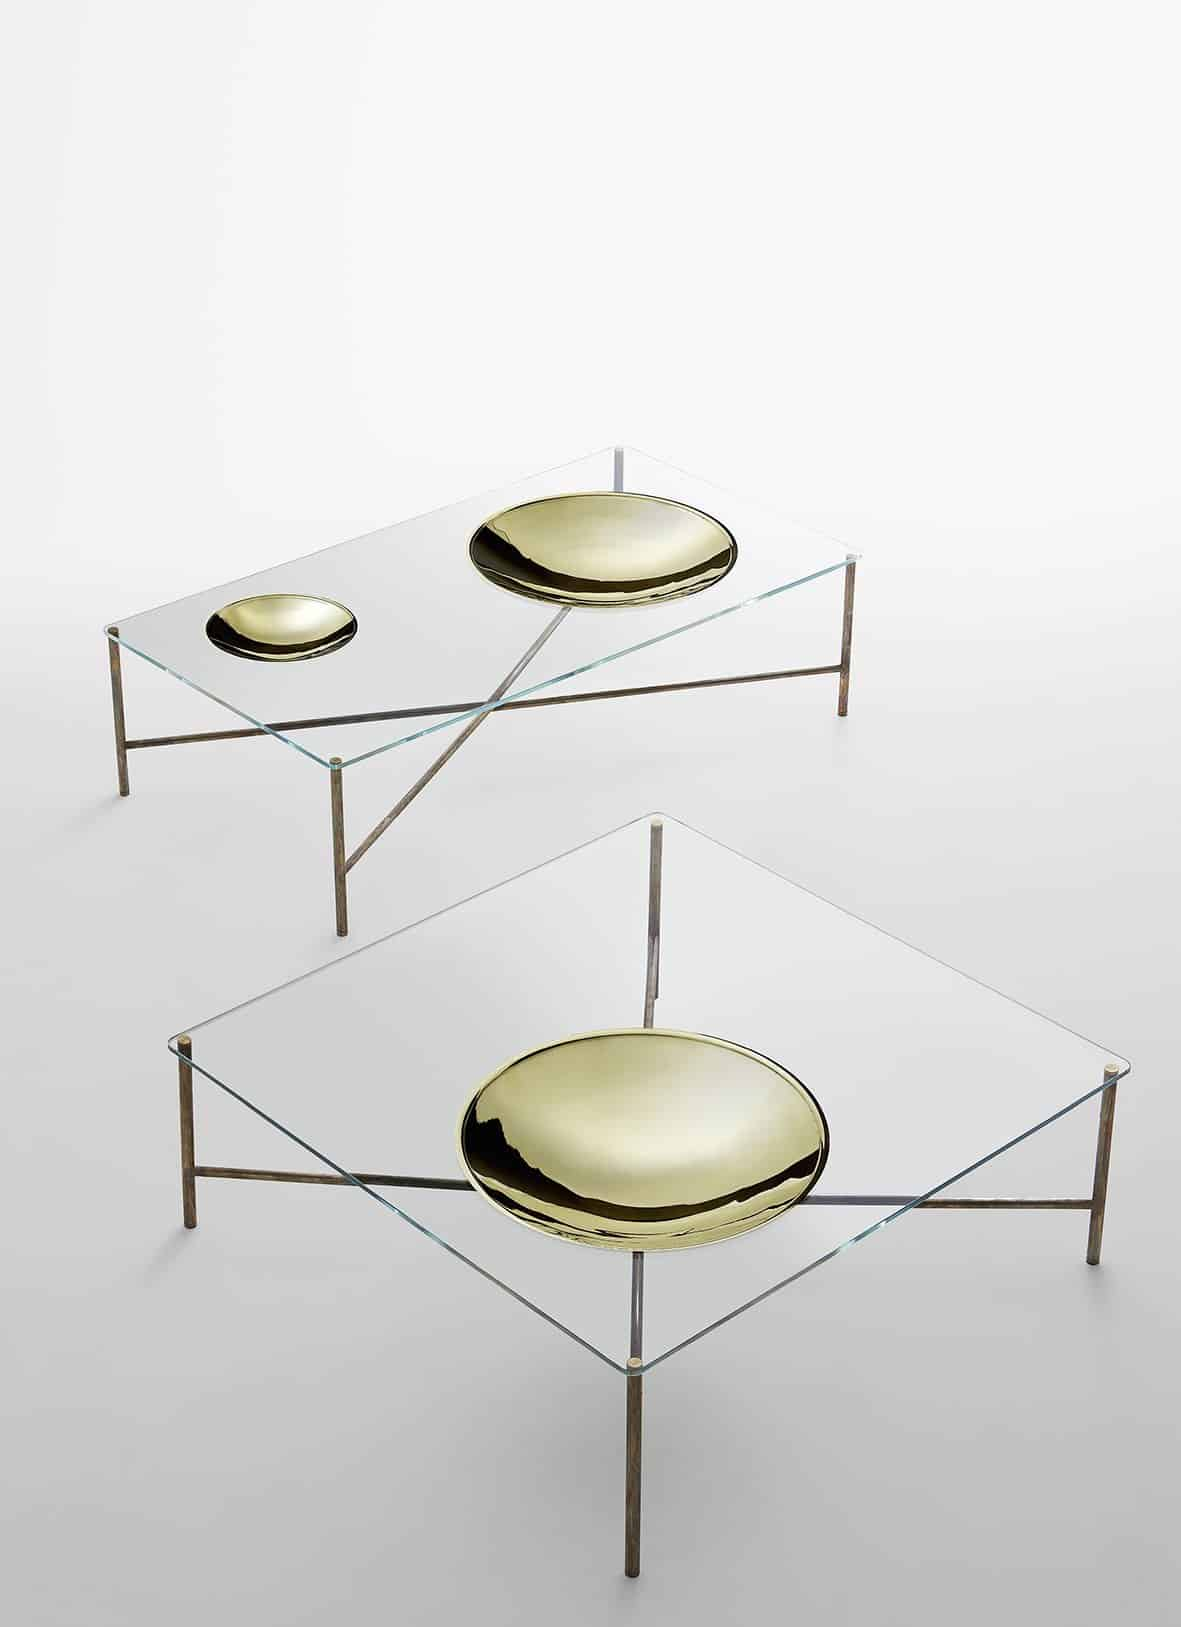 Golden Moon GallottiRadice glass furniture milan 2015